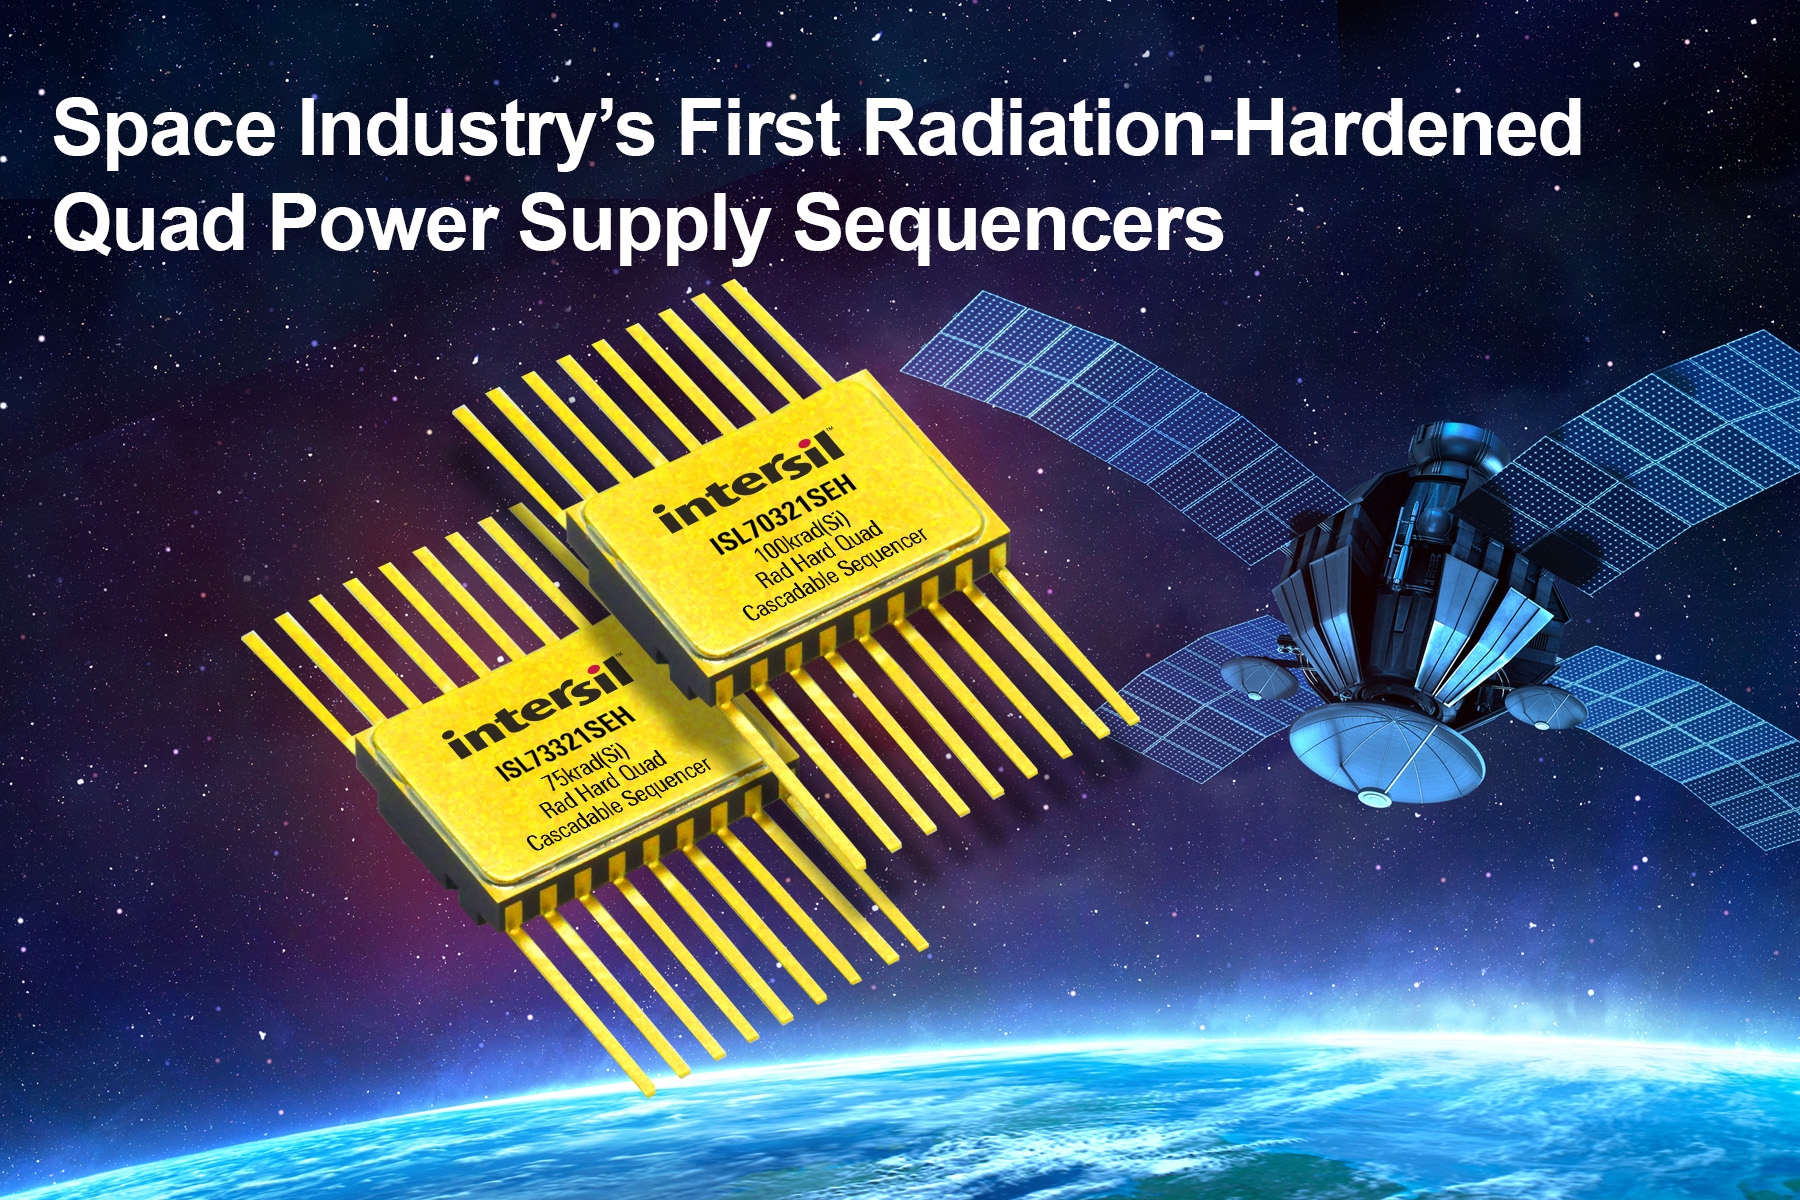 Intersil Delivers Space Industry's First Radiation-Hardened Quad Power Supply Sequencers